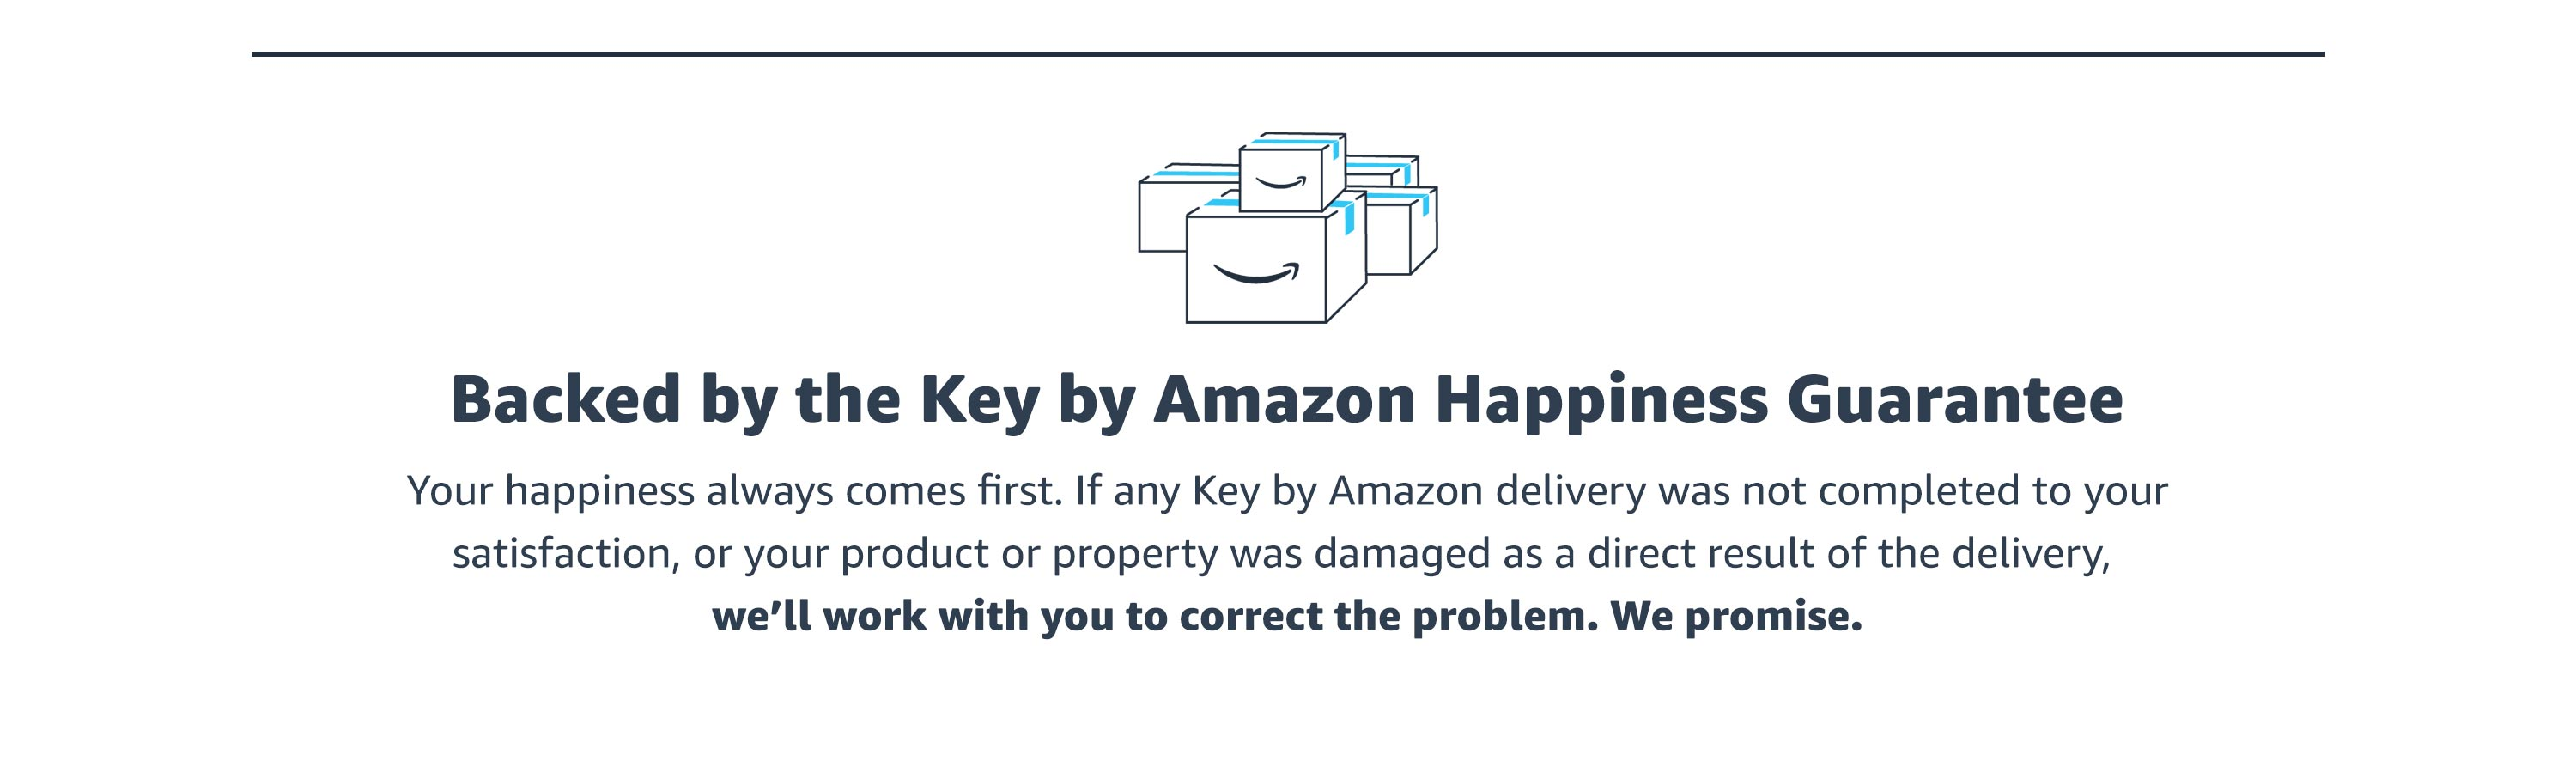 Backed by the Key by Amazon Happiness Guarantee.